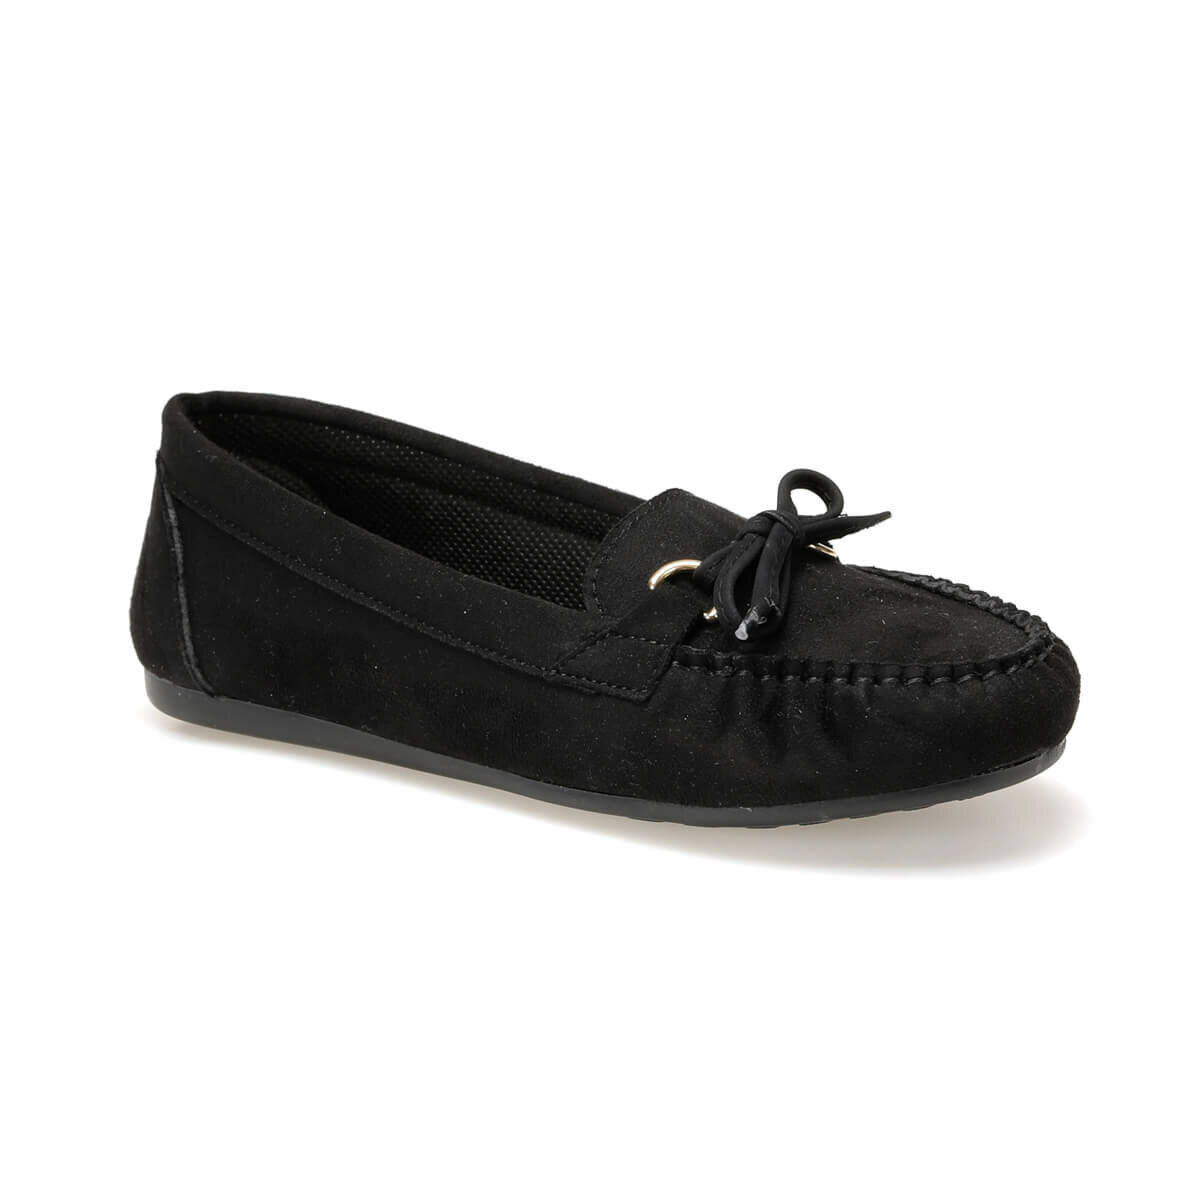 FLO DW19007 Black Women Loafer Shoes Miss F